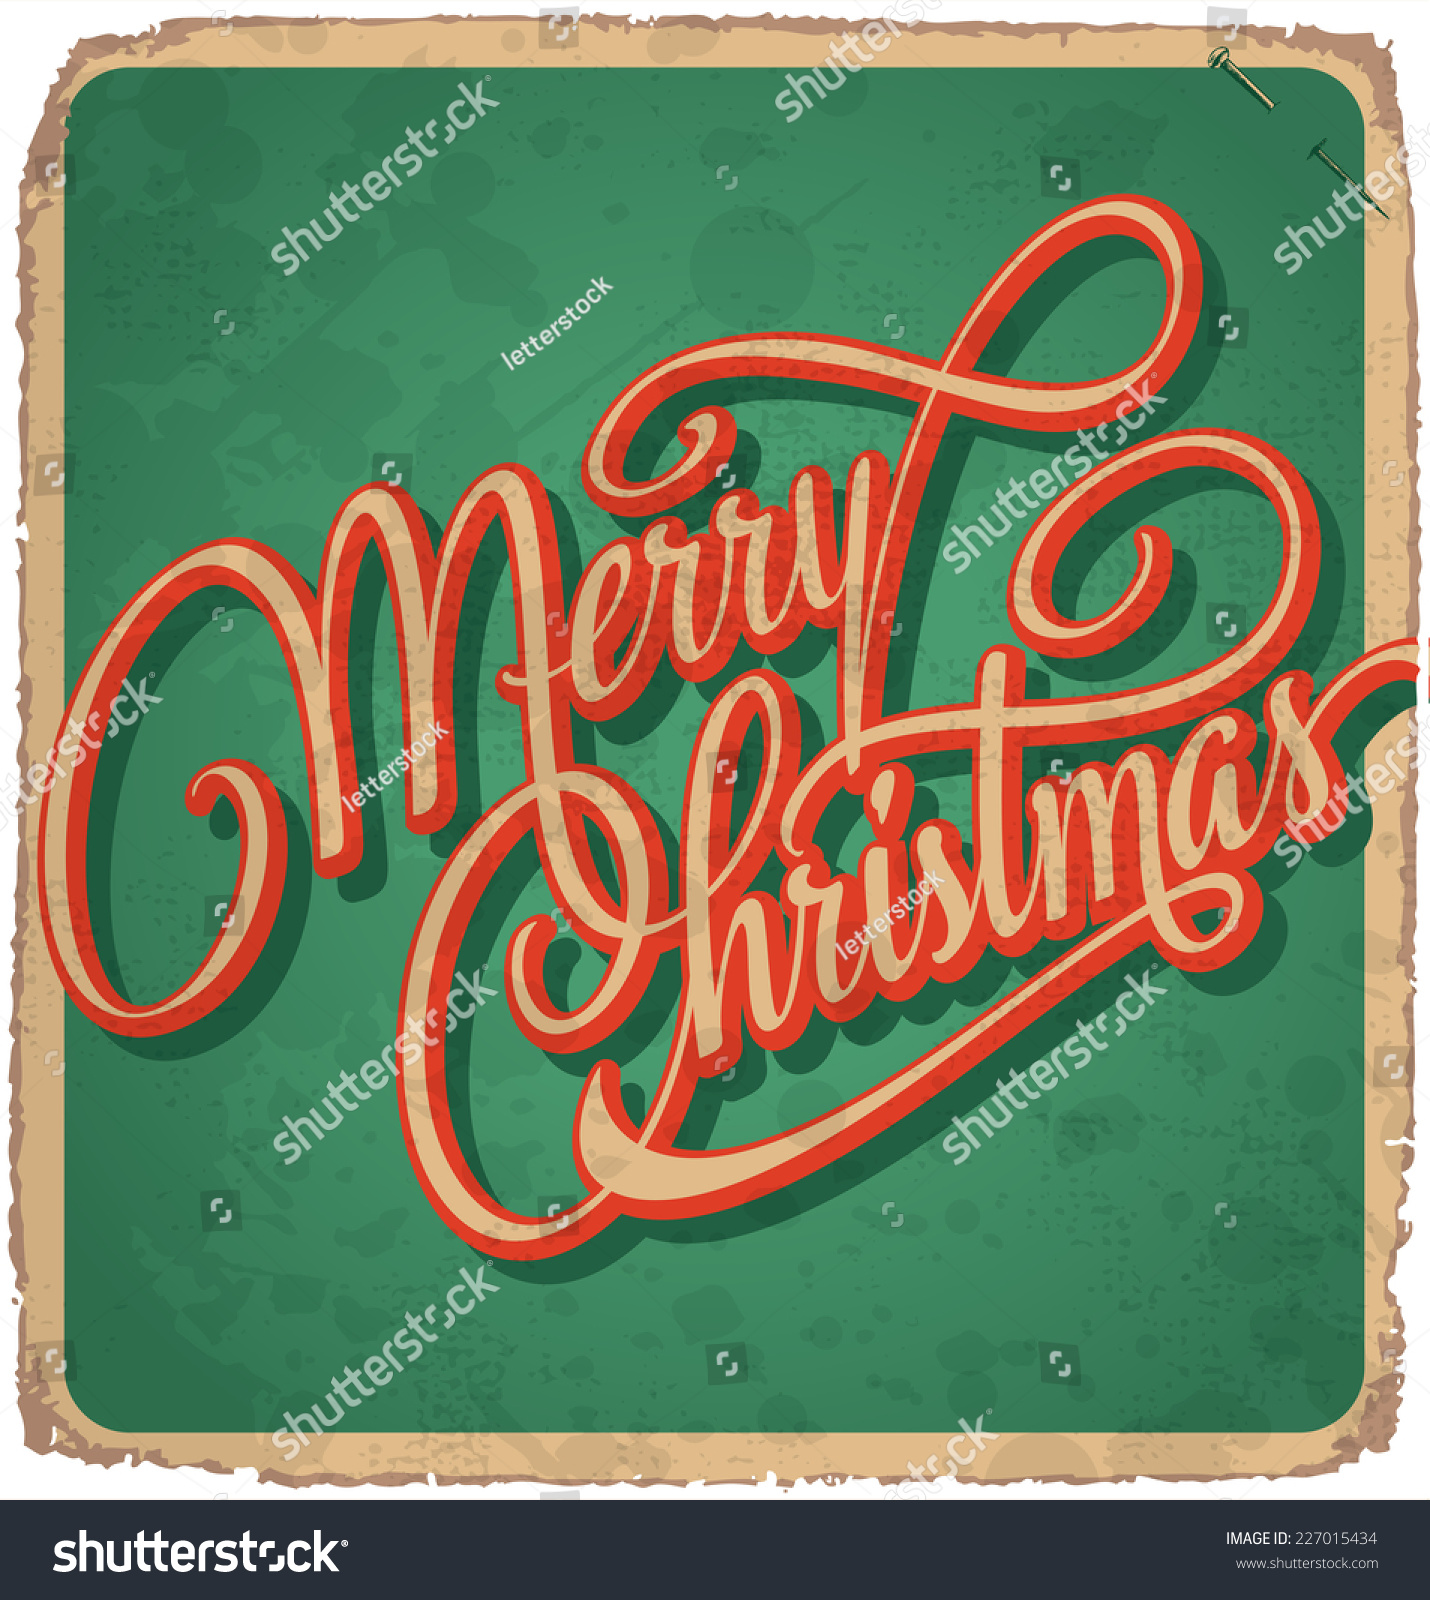 Merry christmas hand lettering vintage card stock vector